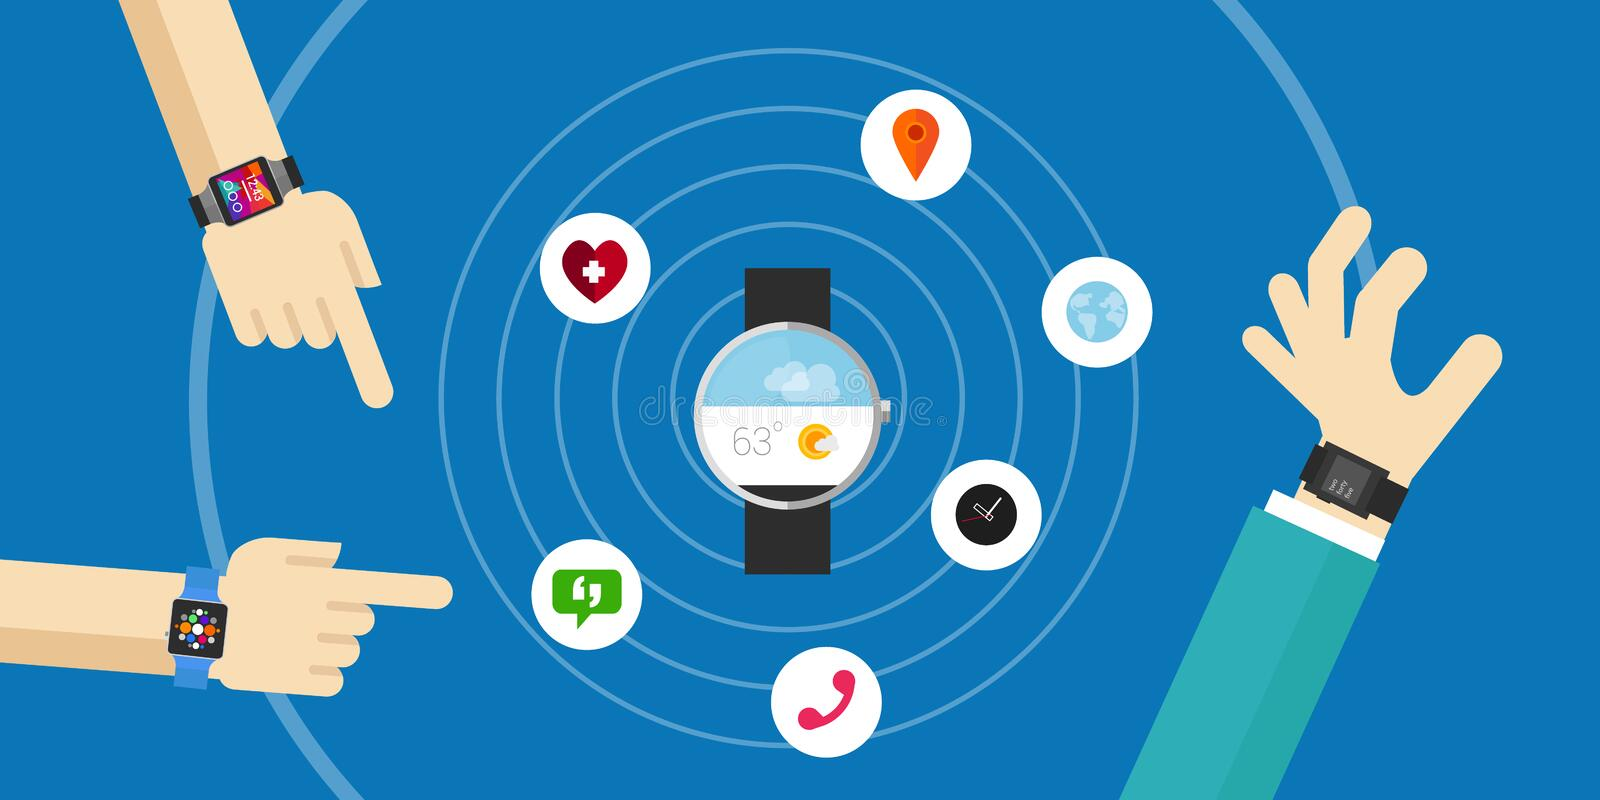 Smart watch wearable functions. Vector illustration of smart watch functions such as messaging, weather info, GPS, calling, time, health sensors and GPS vector illustration